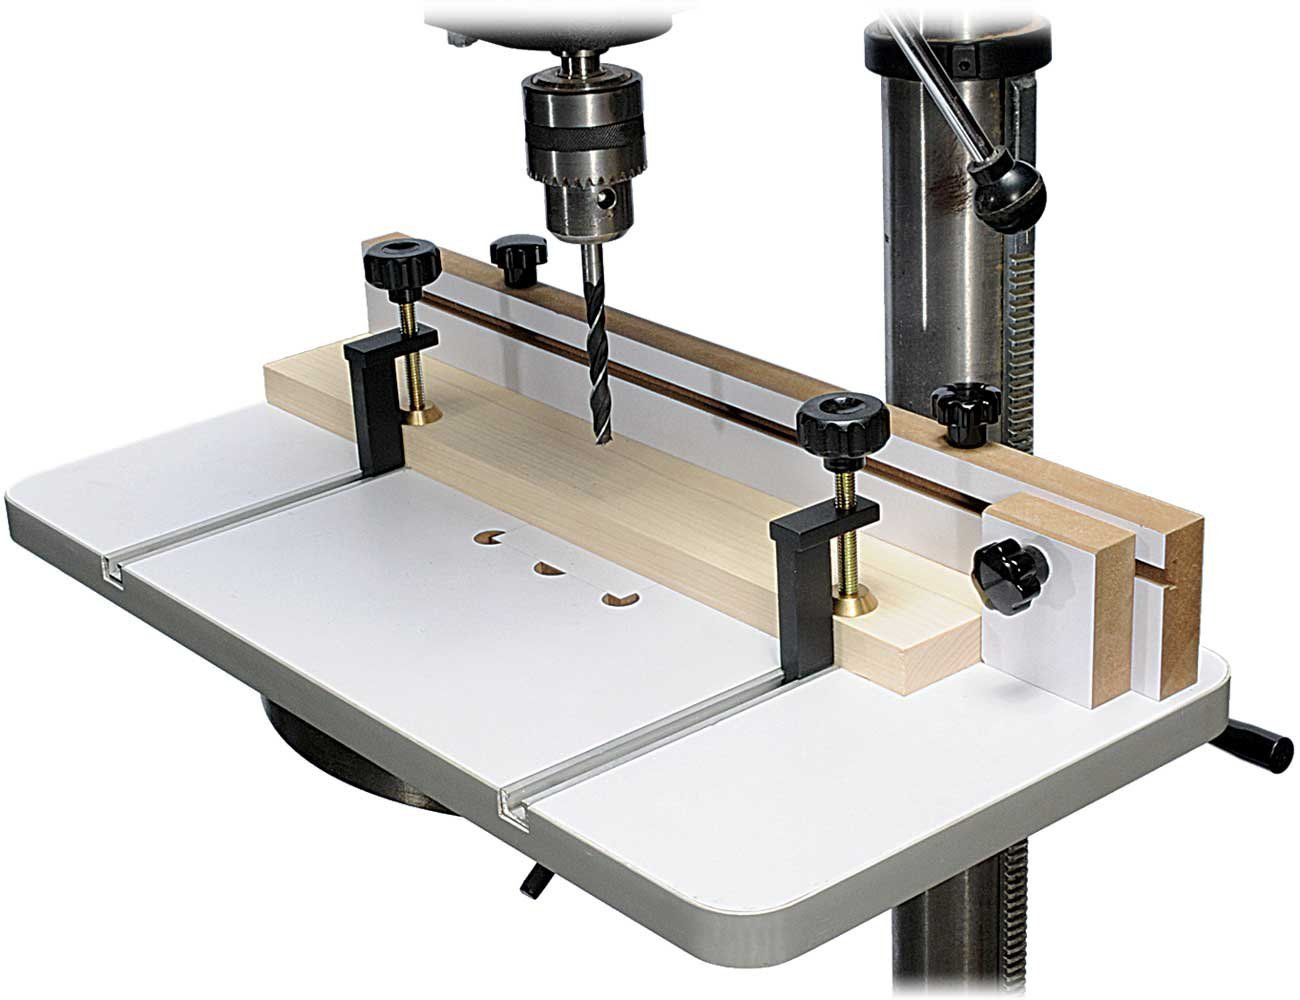 MLCS 2326 Drill Press Table and Fence with T-Track